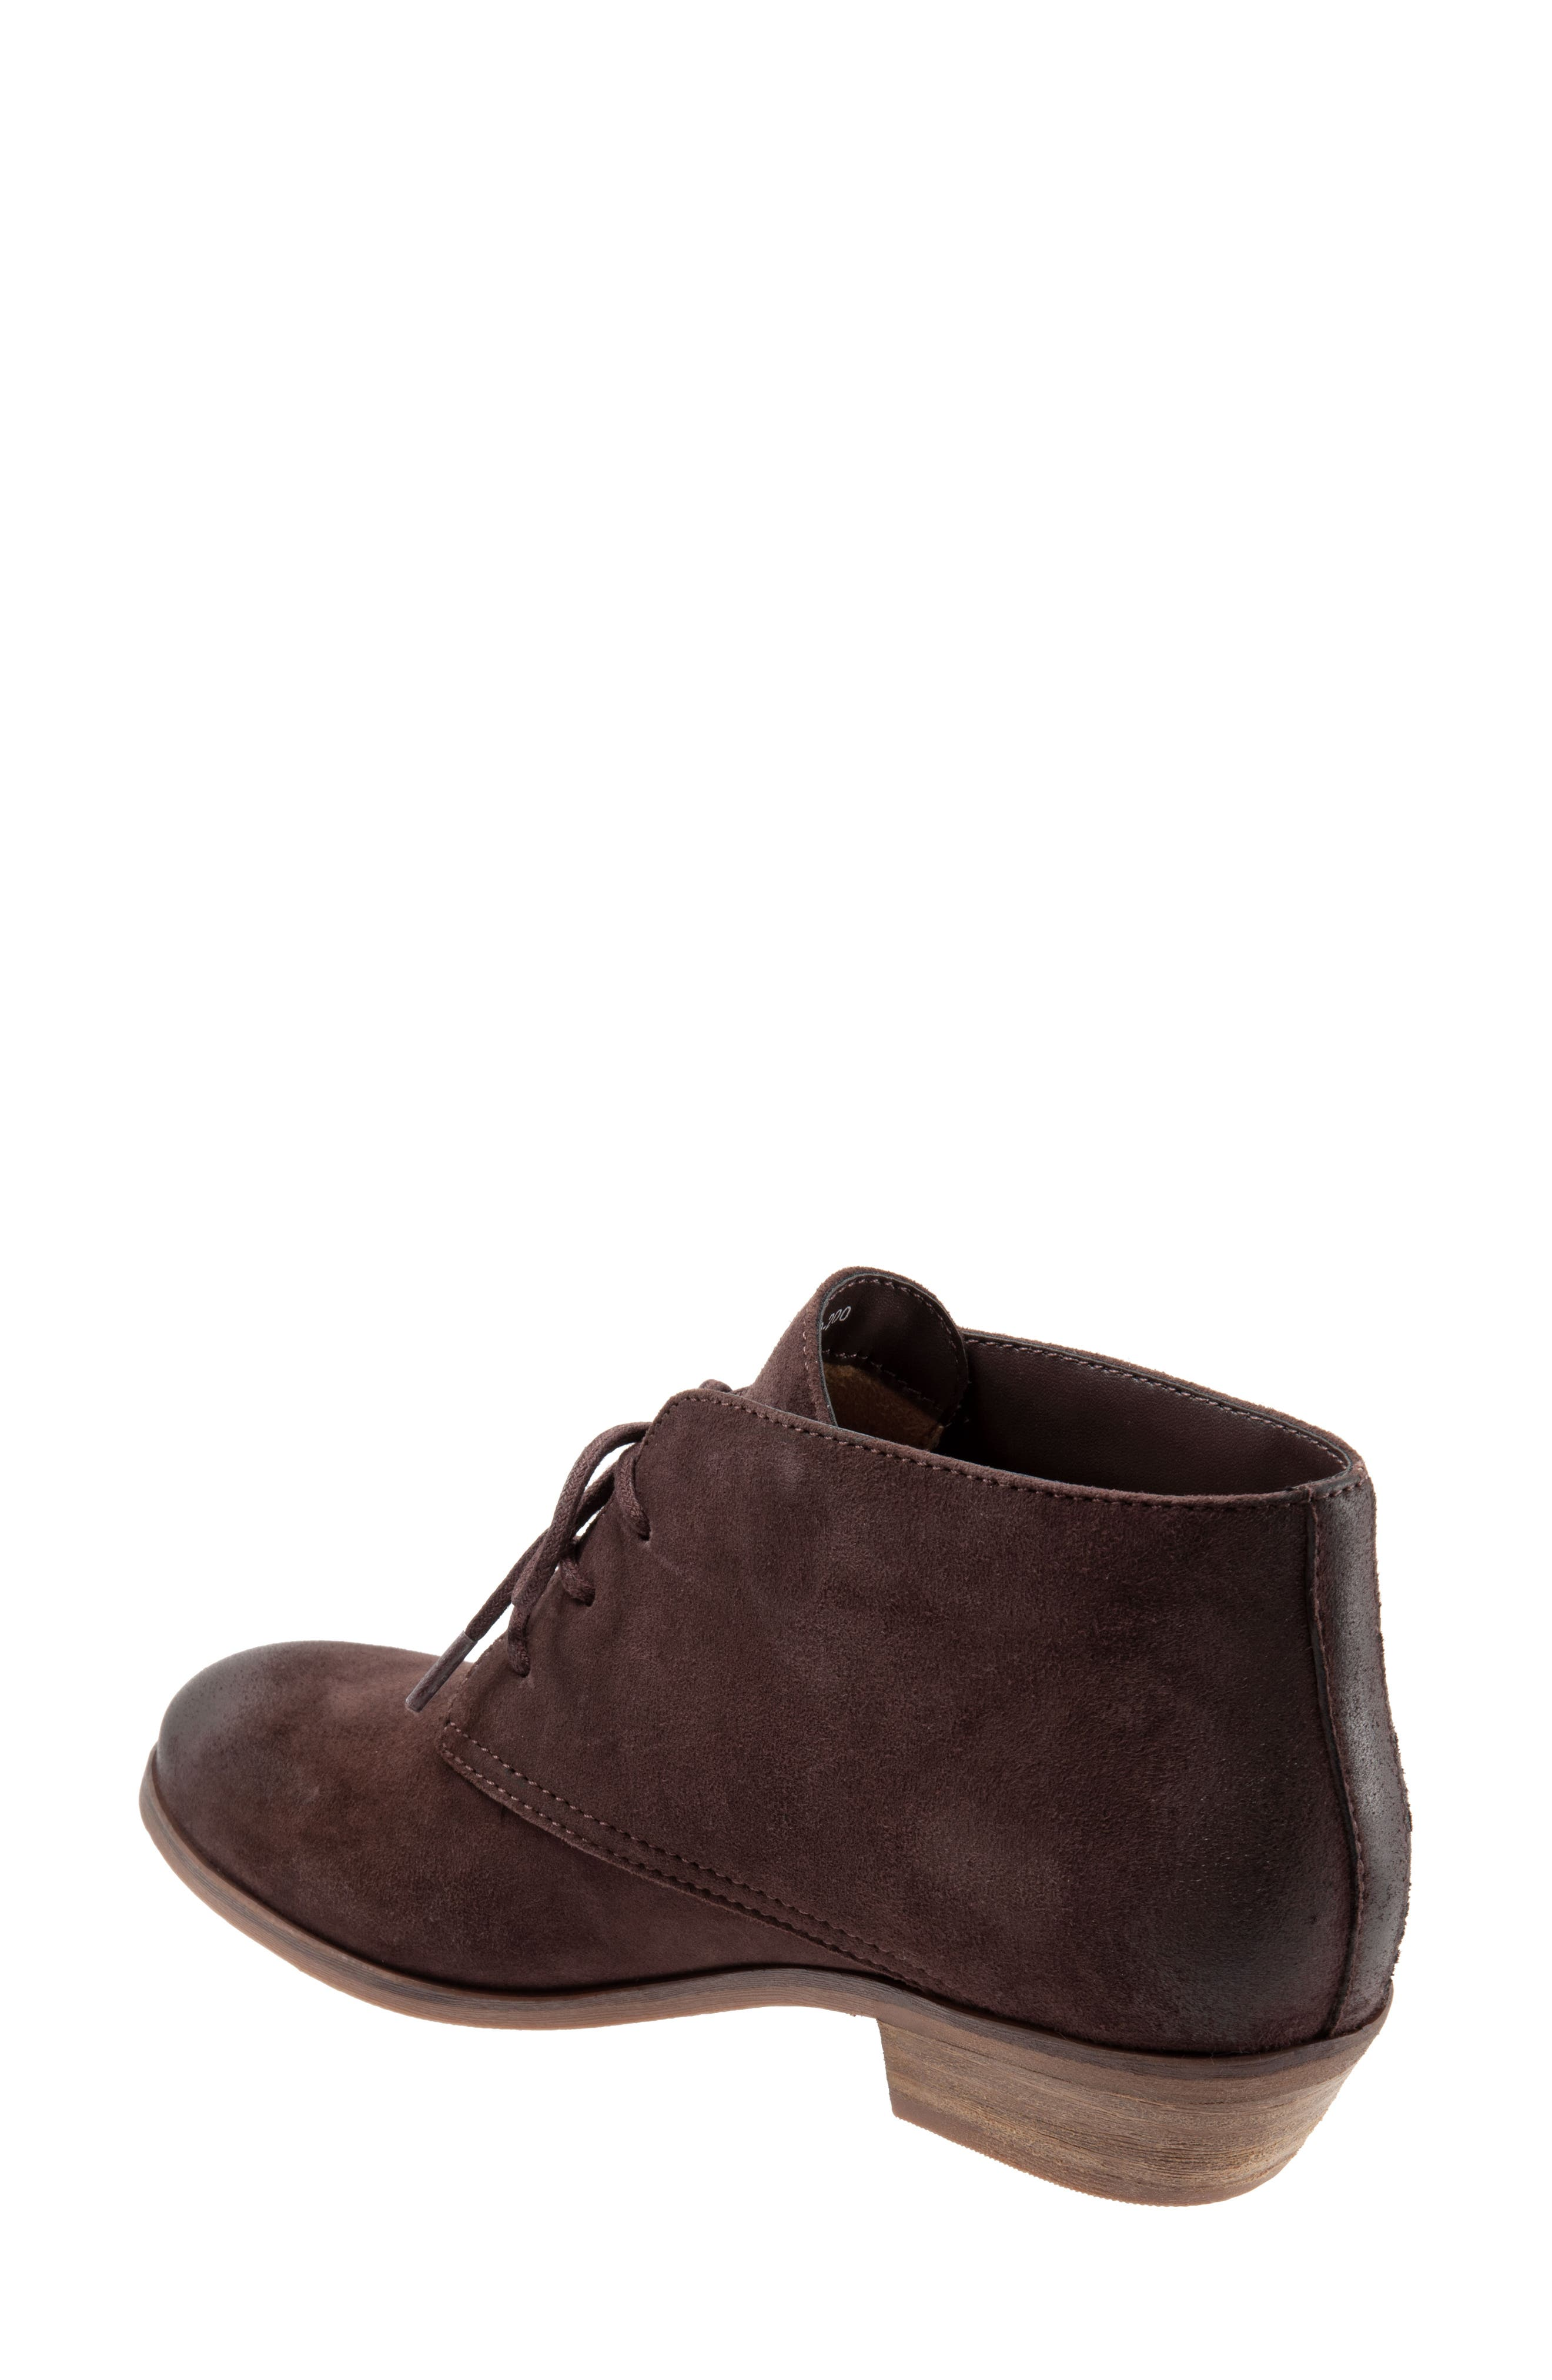 SOFTWALK<SUP>®</SUP>, Ramsey Chukka Boot, Alternate thumbnail 2, color, DARK BROWN LEATHER